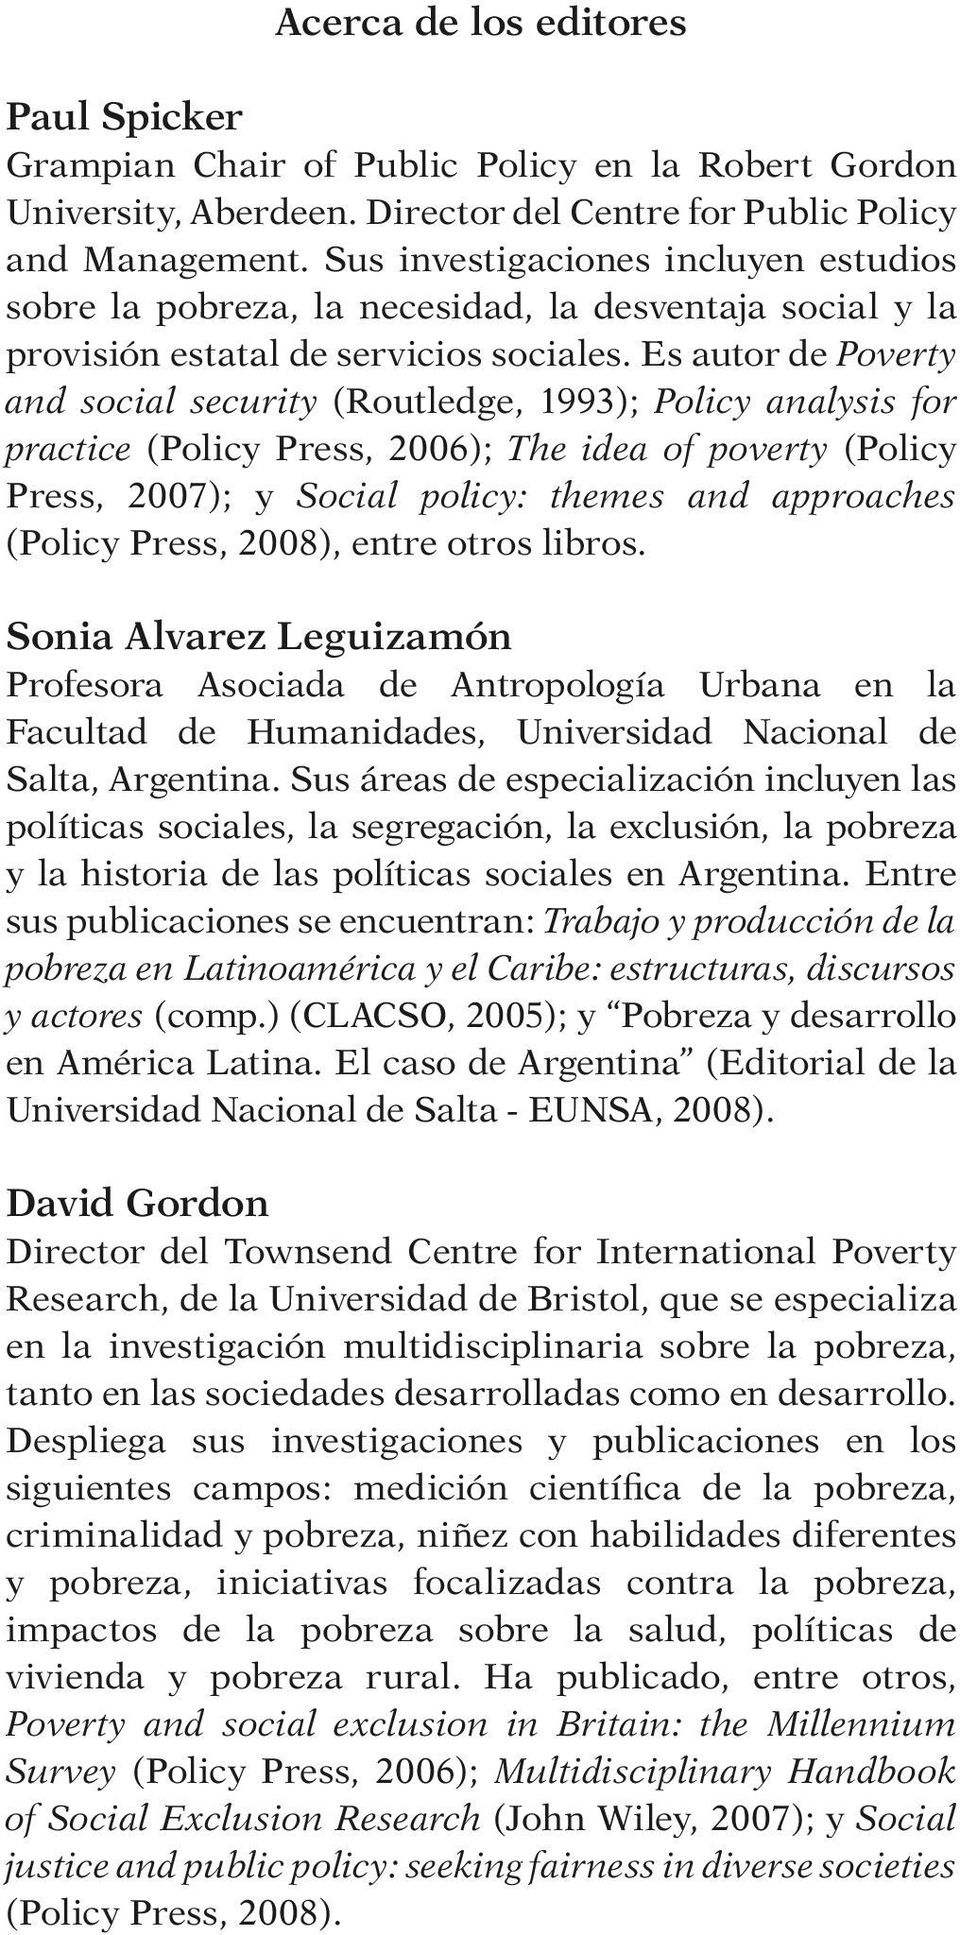 Es autor de Poverty and social security (Routledge, 1993); Policy analysis for practice (Policy Press, 2006); The idea of poverty (Policy Press, 2007); y Social policy: themes and approaches (Policy